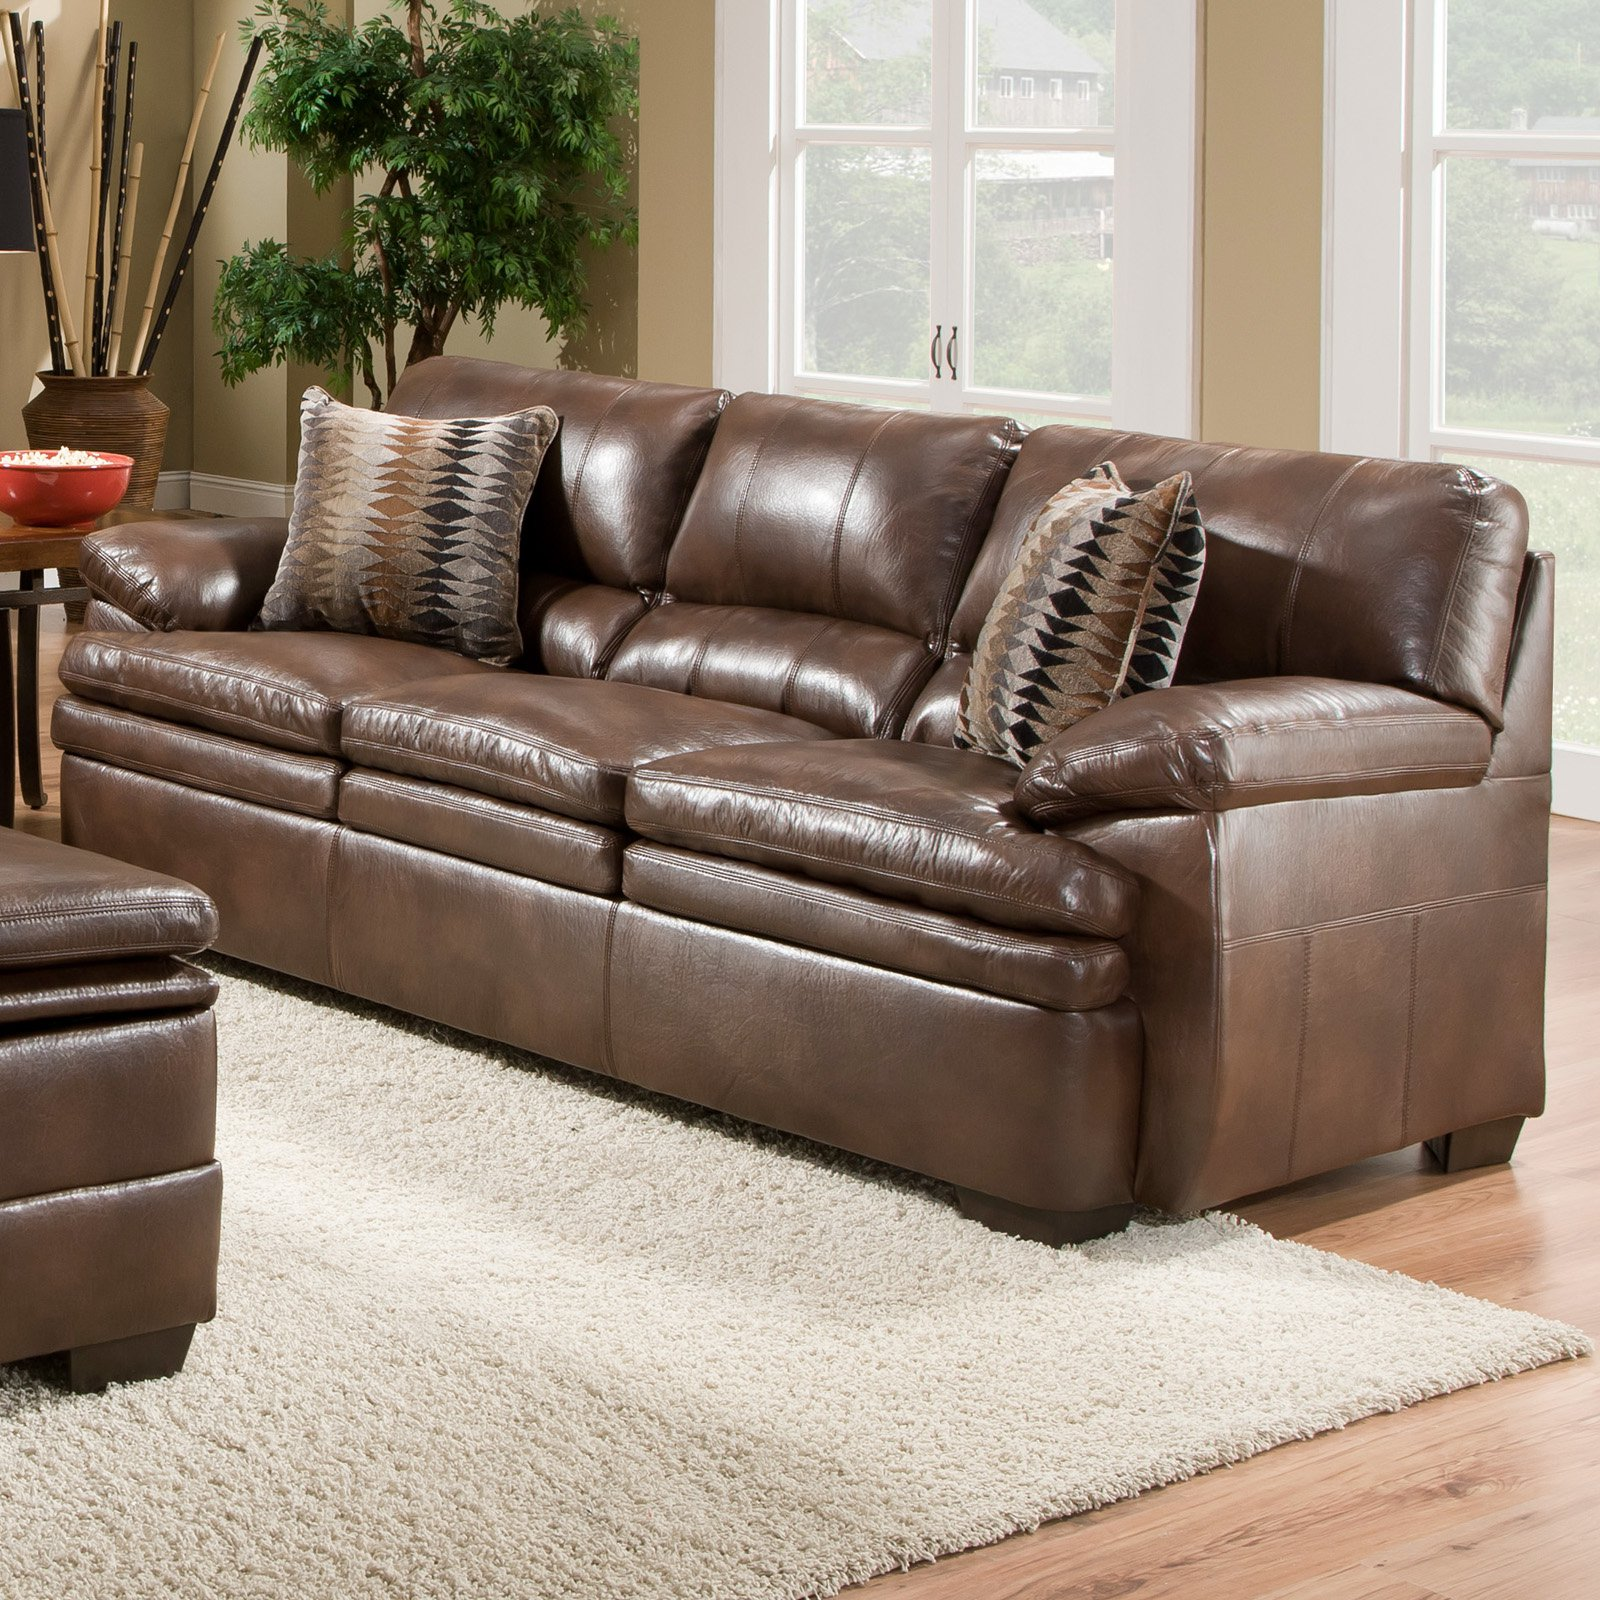 Simmons Upholstery Editor Bonded Leather Sofa   Brown